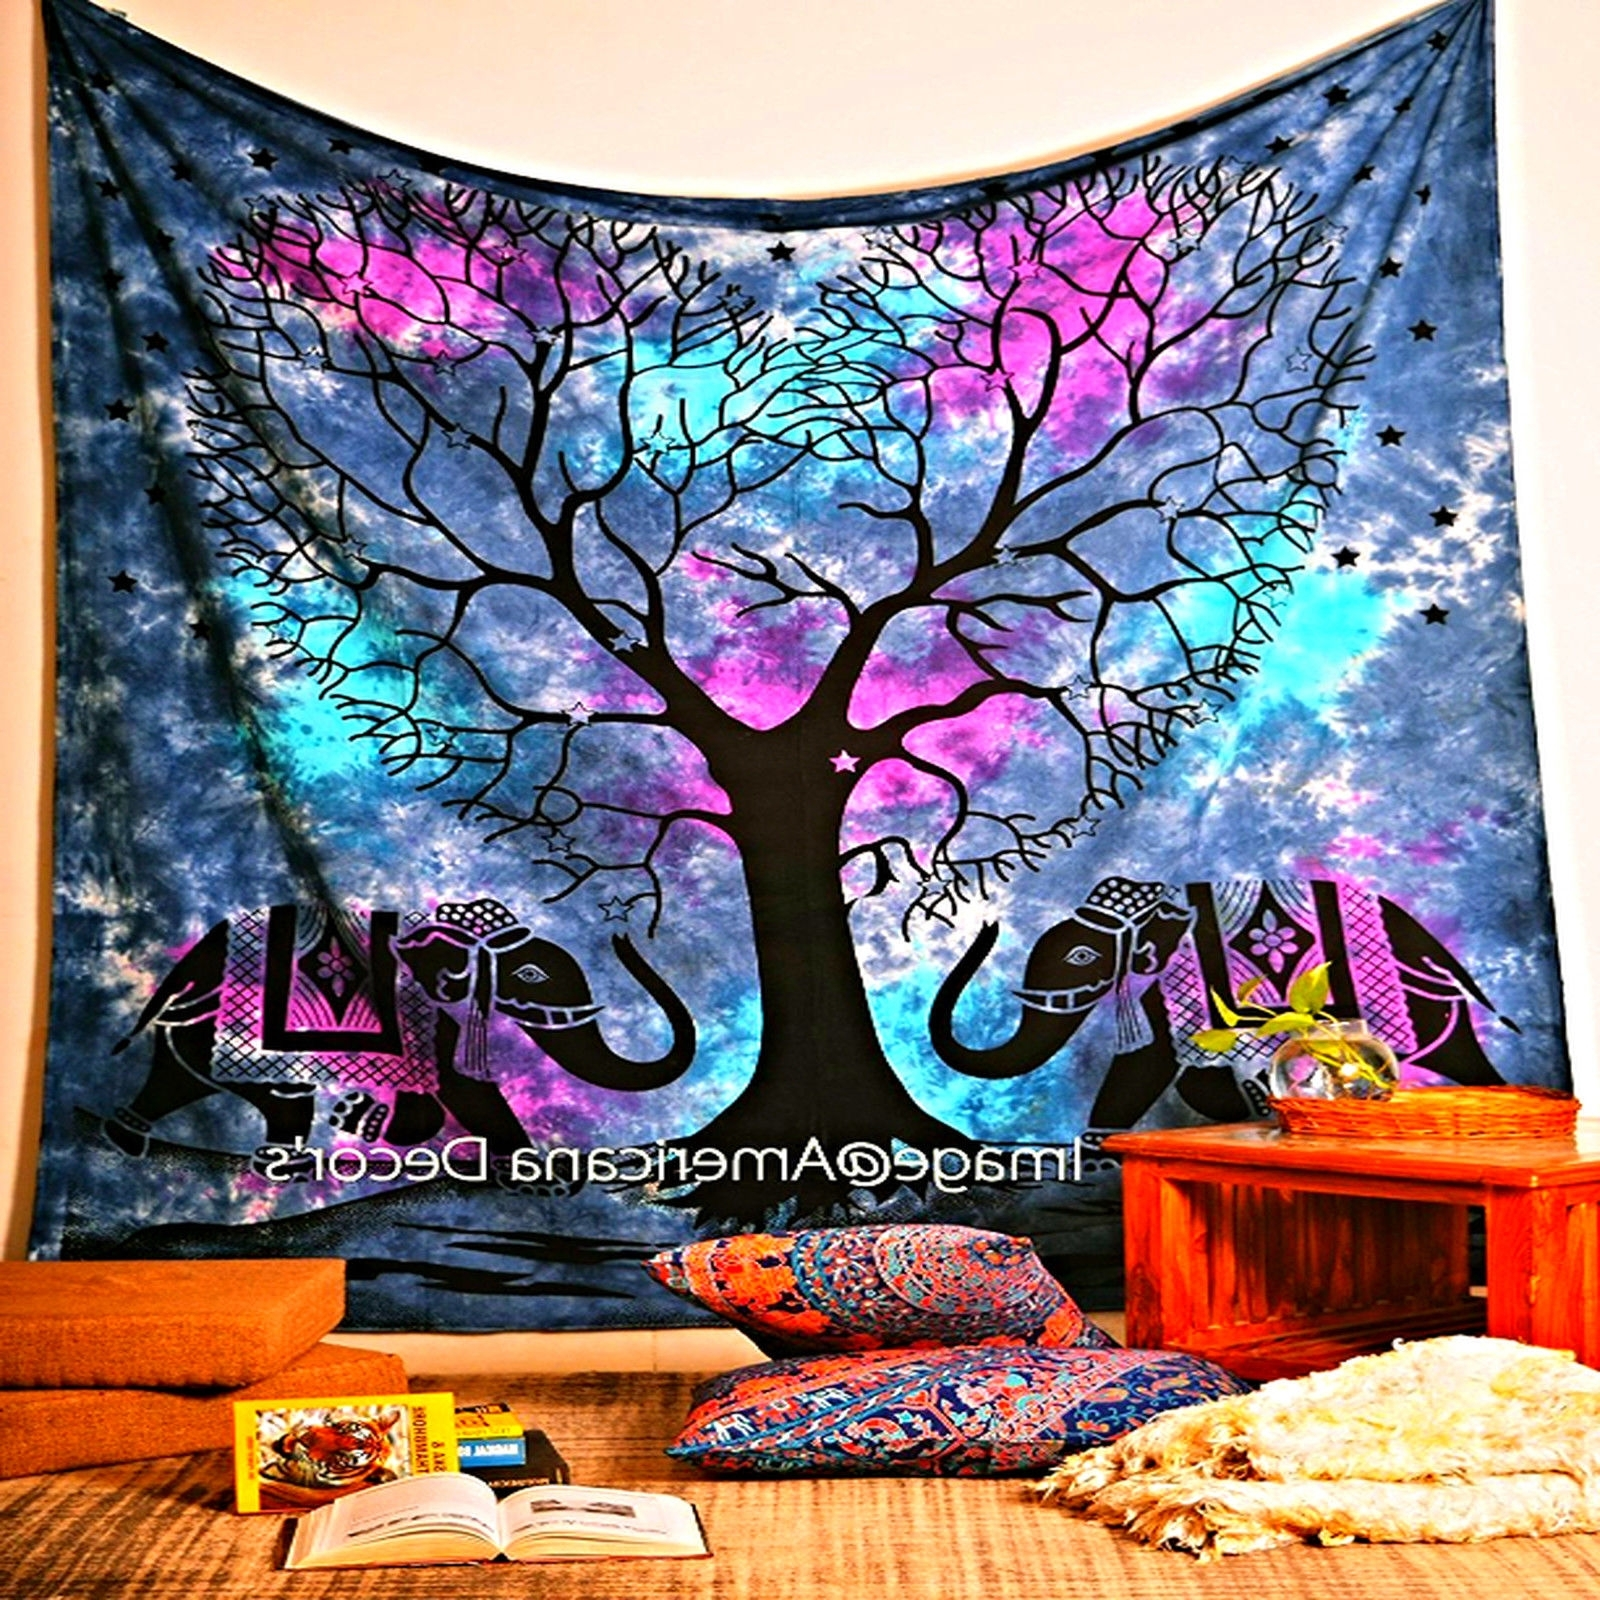 Bohemian Wall Art Tapestry Tree Elephant Indian Bedspread Blanket Pertaining To Latest Bohemian Wall Art (Gallery 6 of 20)